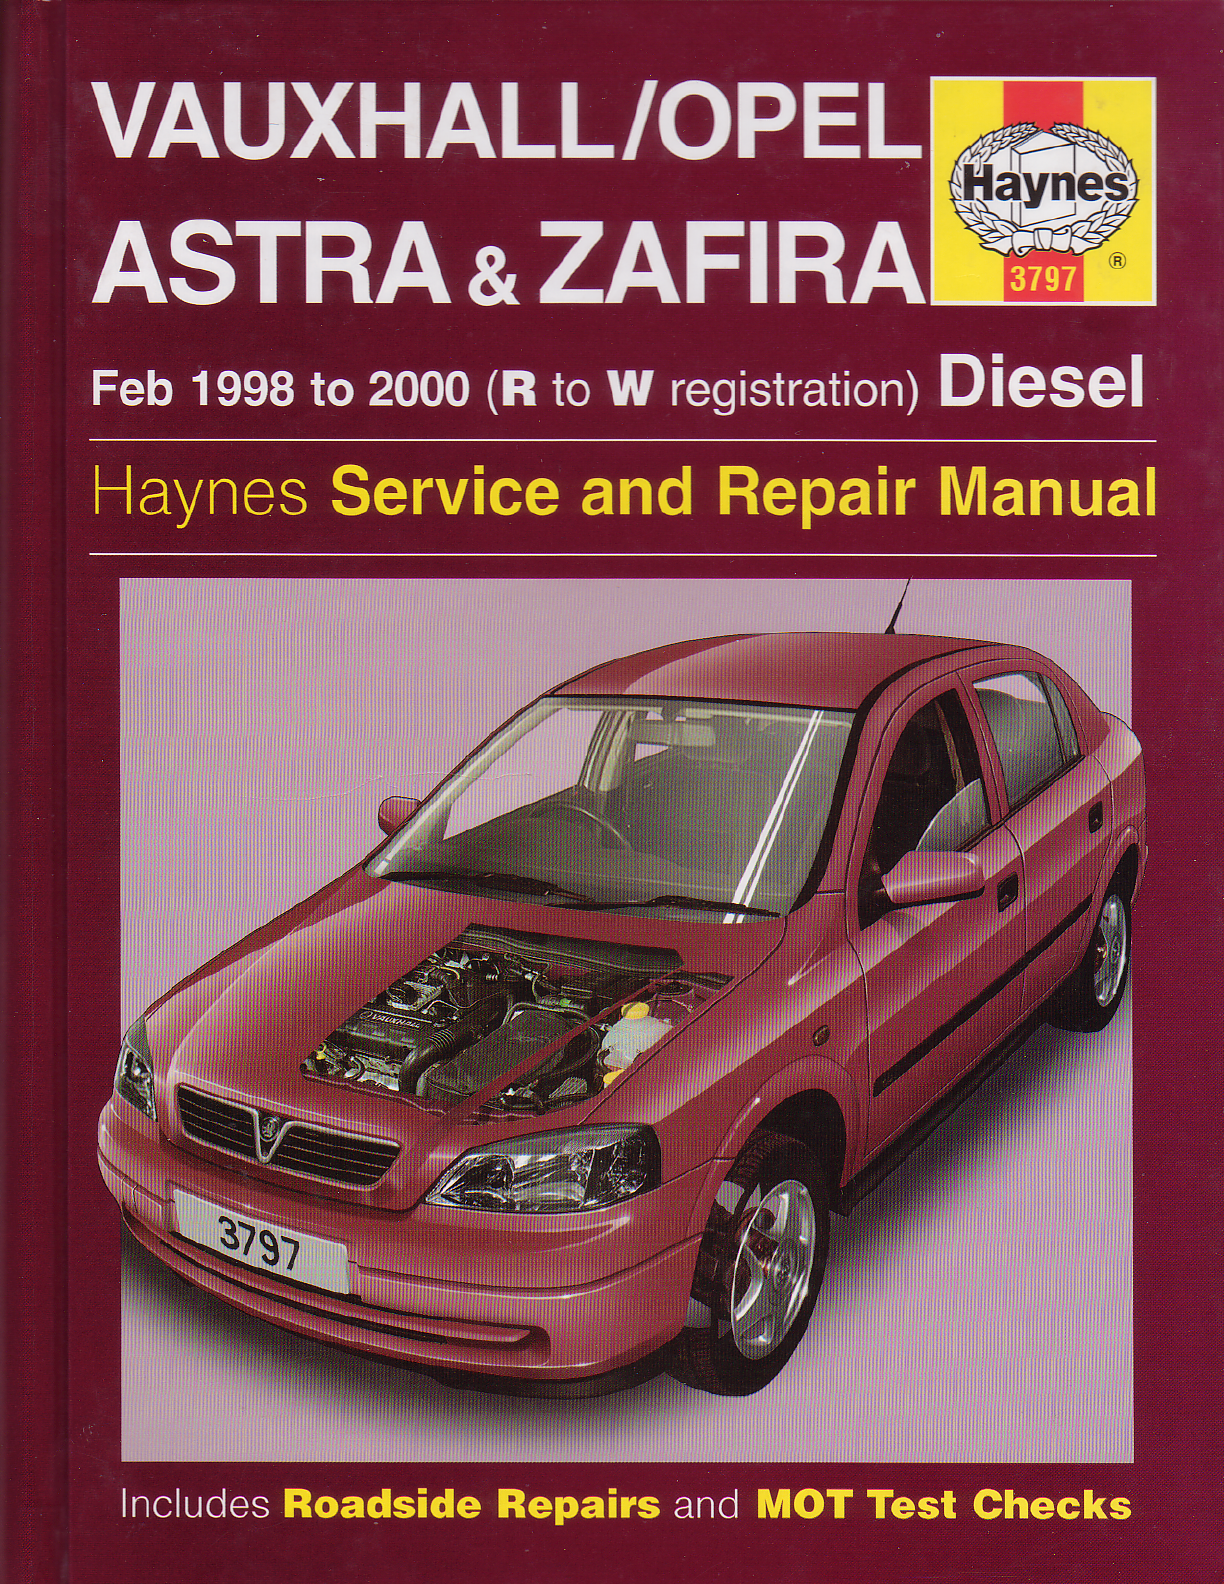 Opel astra 1998 2000 workshop manual haynes pdf.